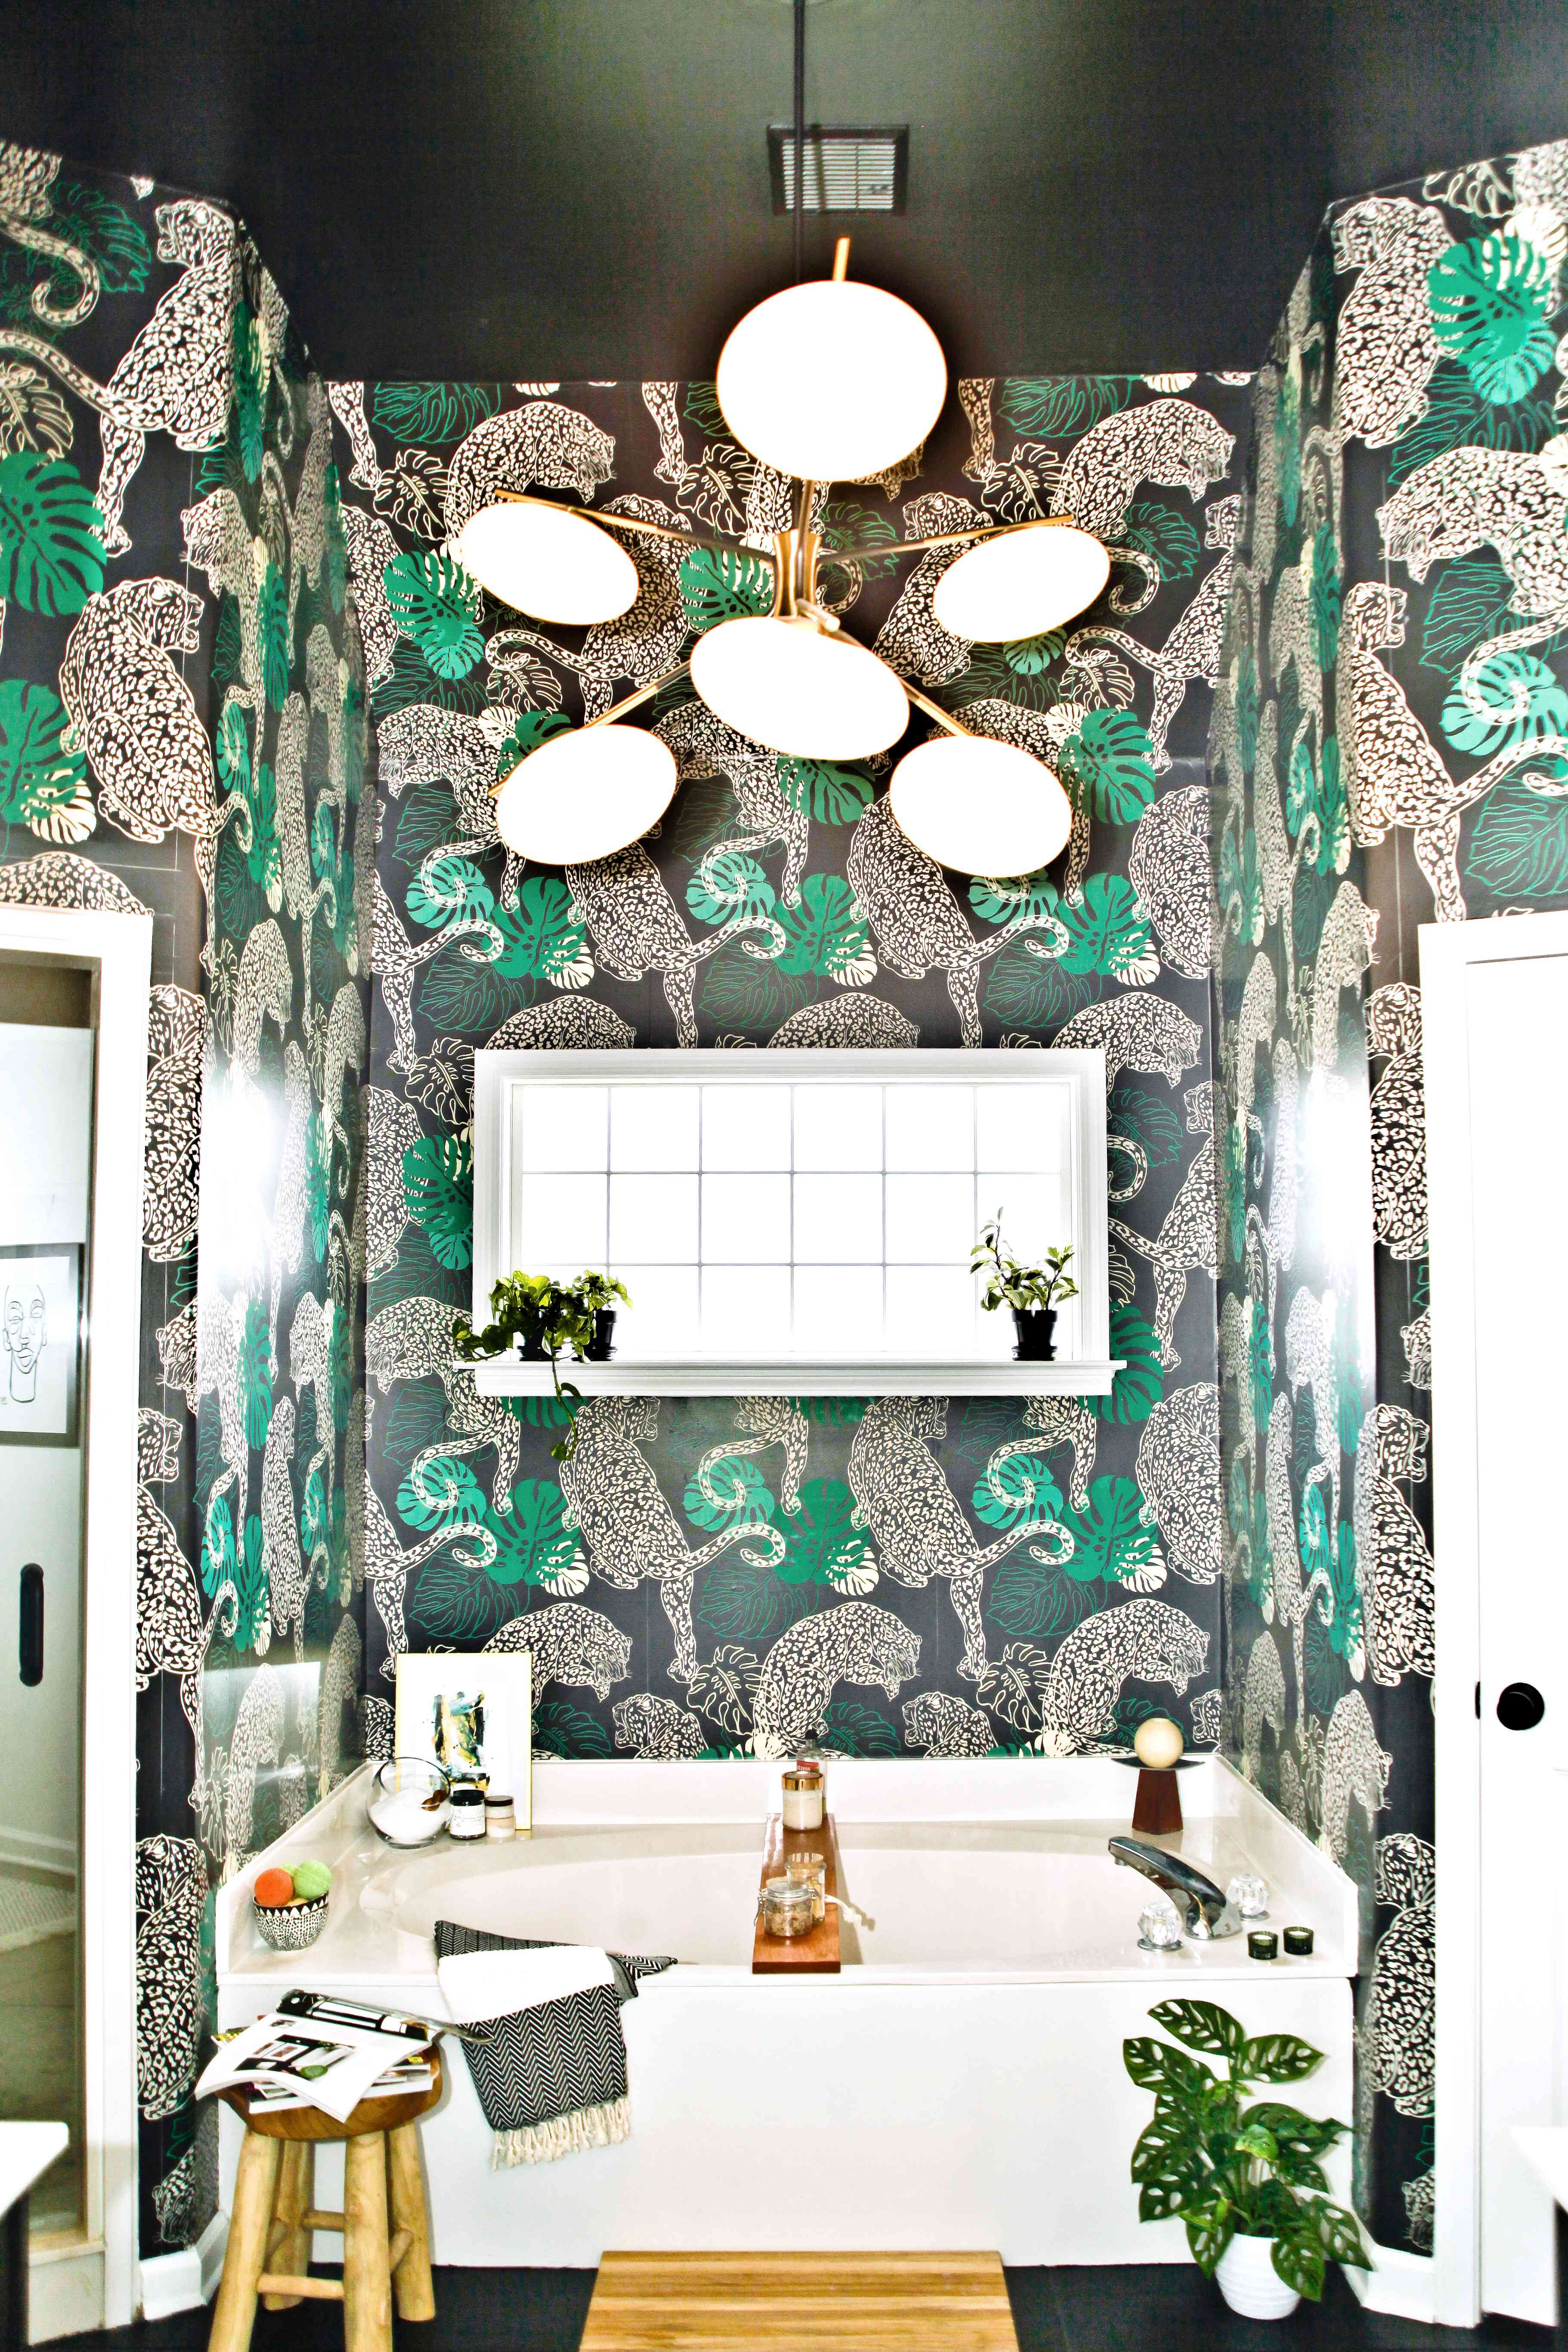 one room I'll never forget - bathroom with cheetah wallpaper